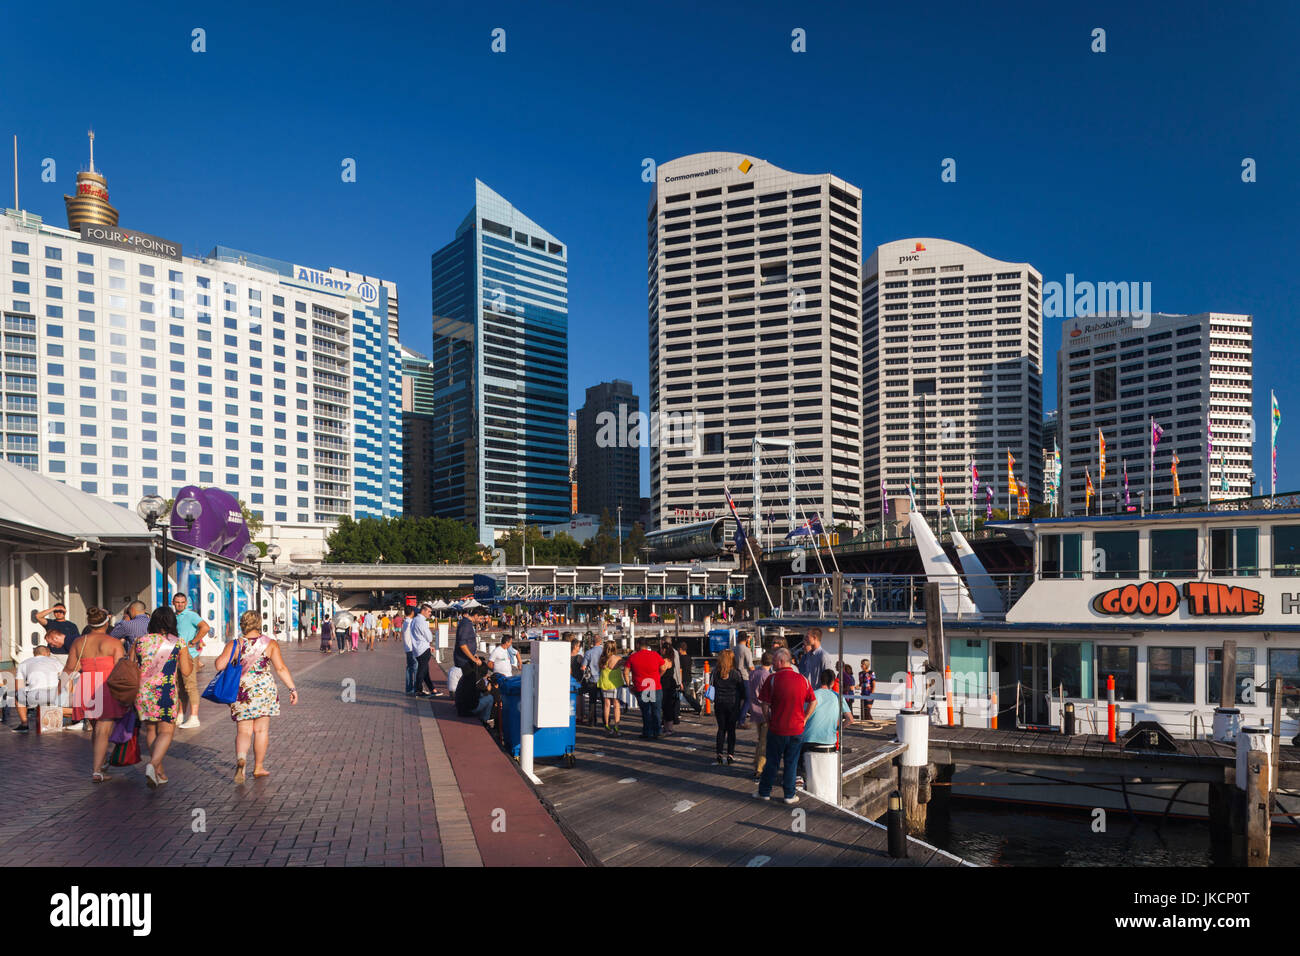 Australia, New South Wales, NSW, Sydney, Darling Harbour, late afternoon - Stock Image